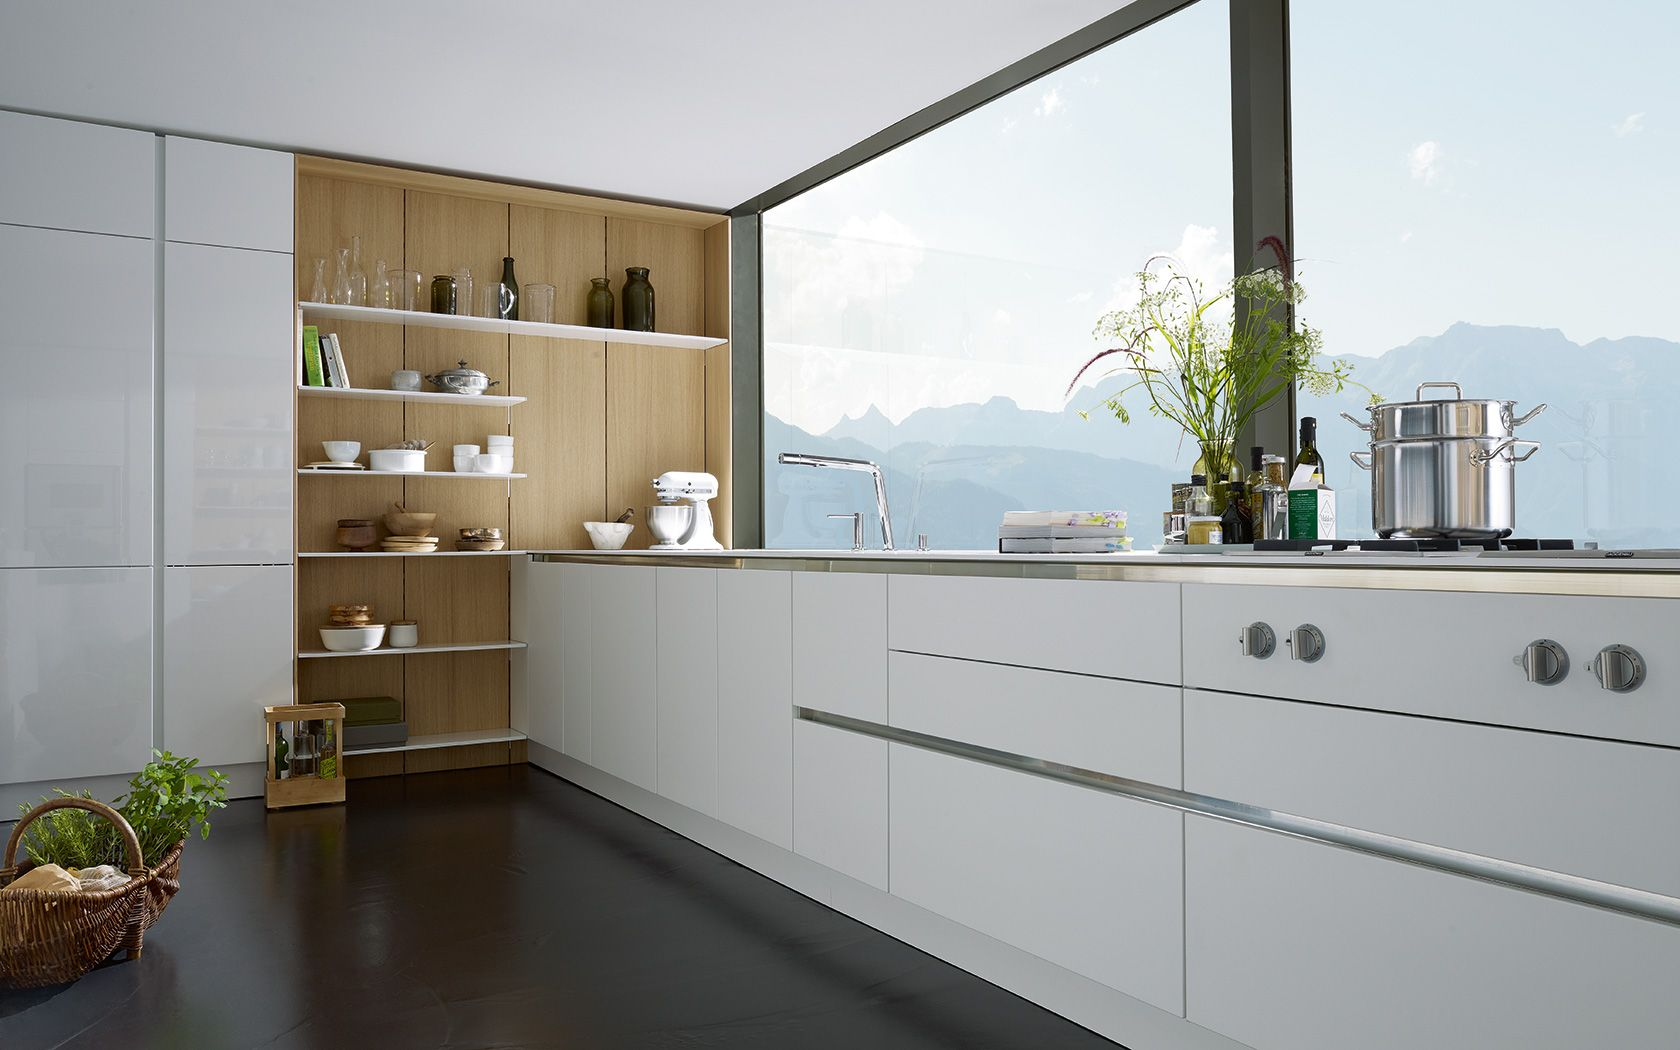 1000+ images about Koolschijn SieMatic Smart Design on Pinterest ...